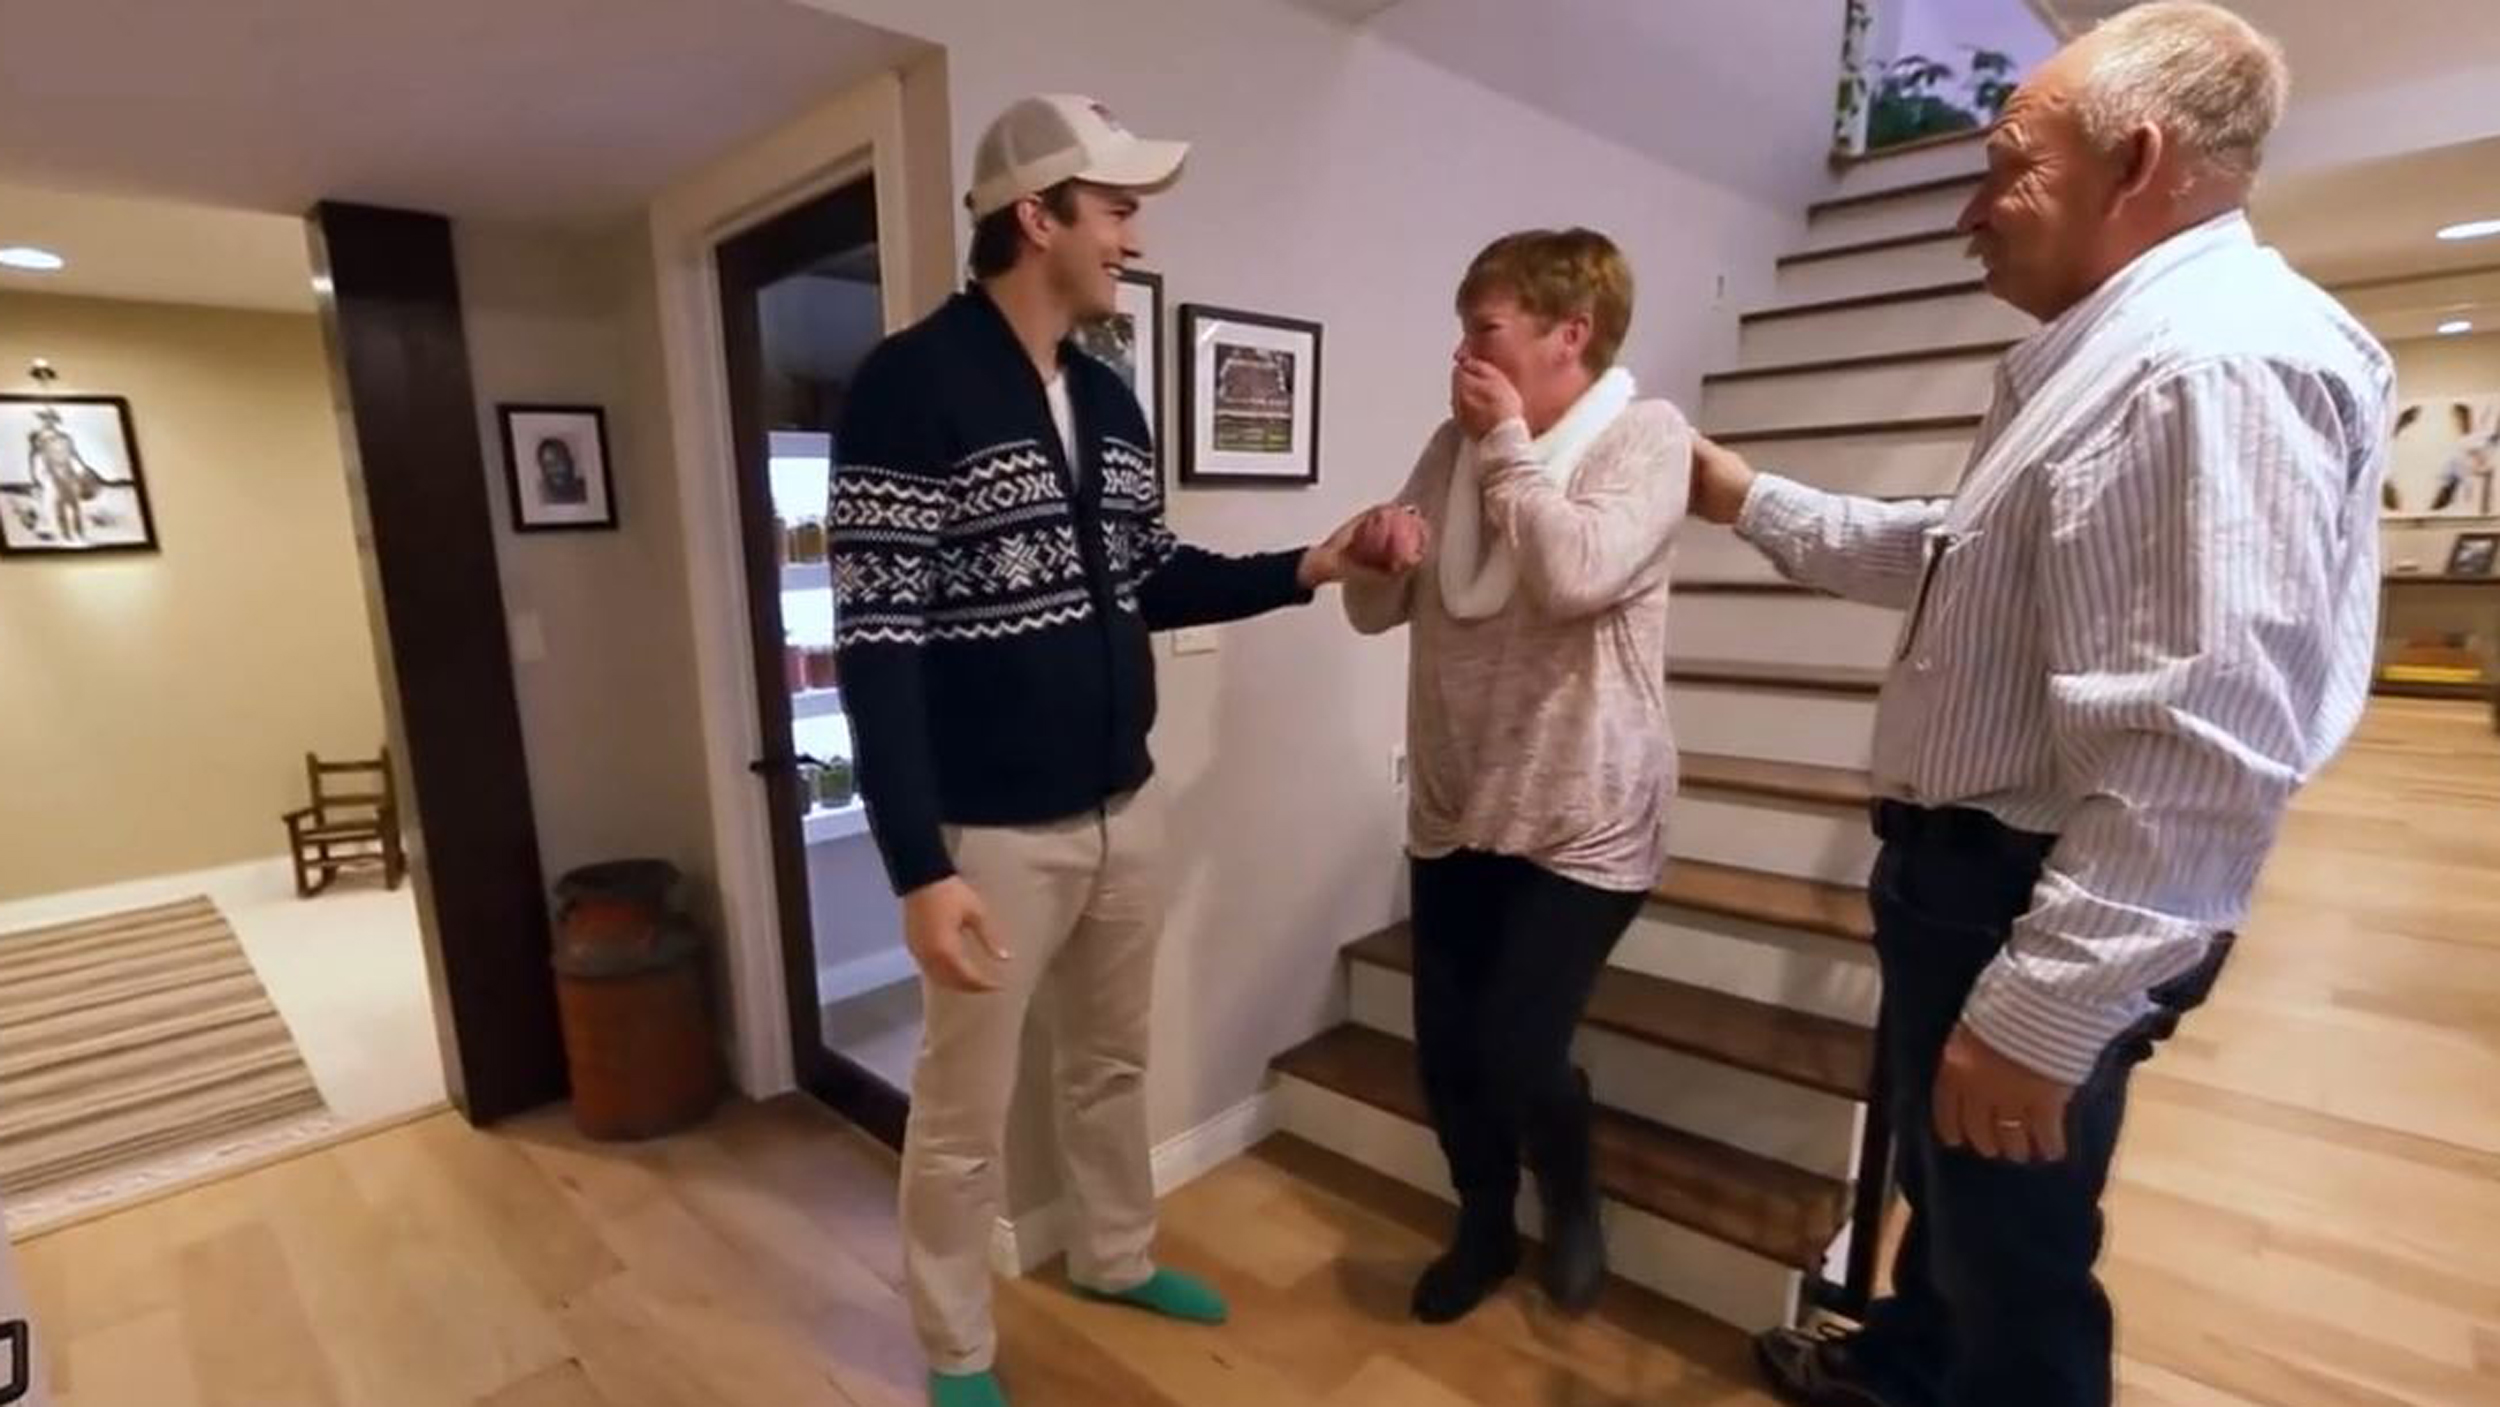 Ashton Kutcher Surprises Mom With A Home Makeover